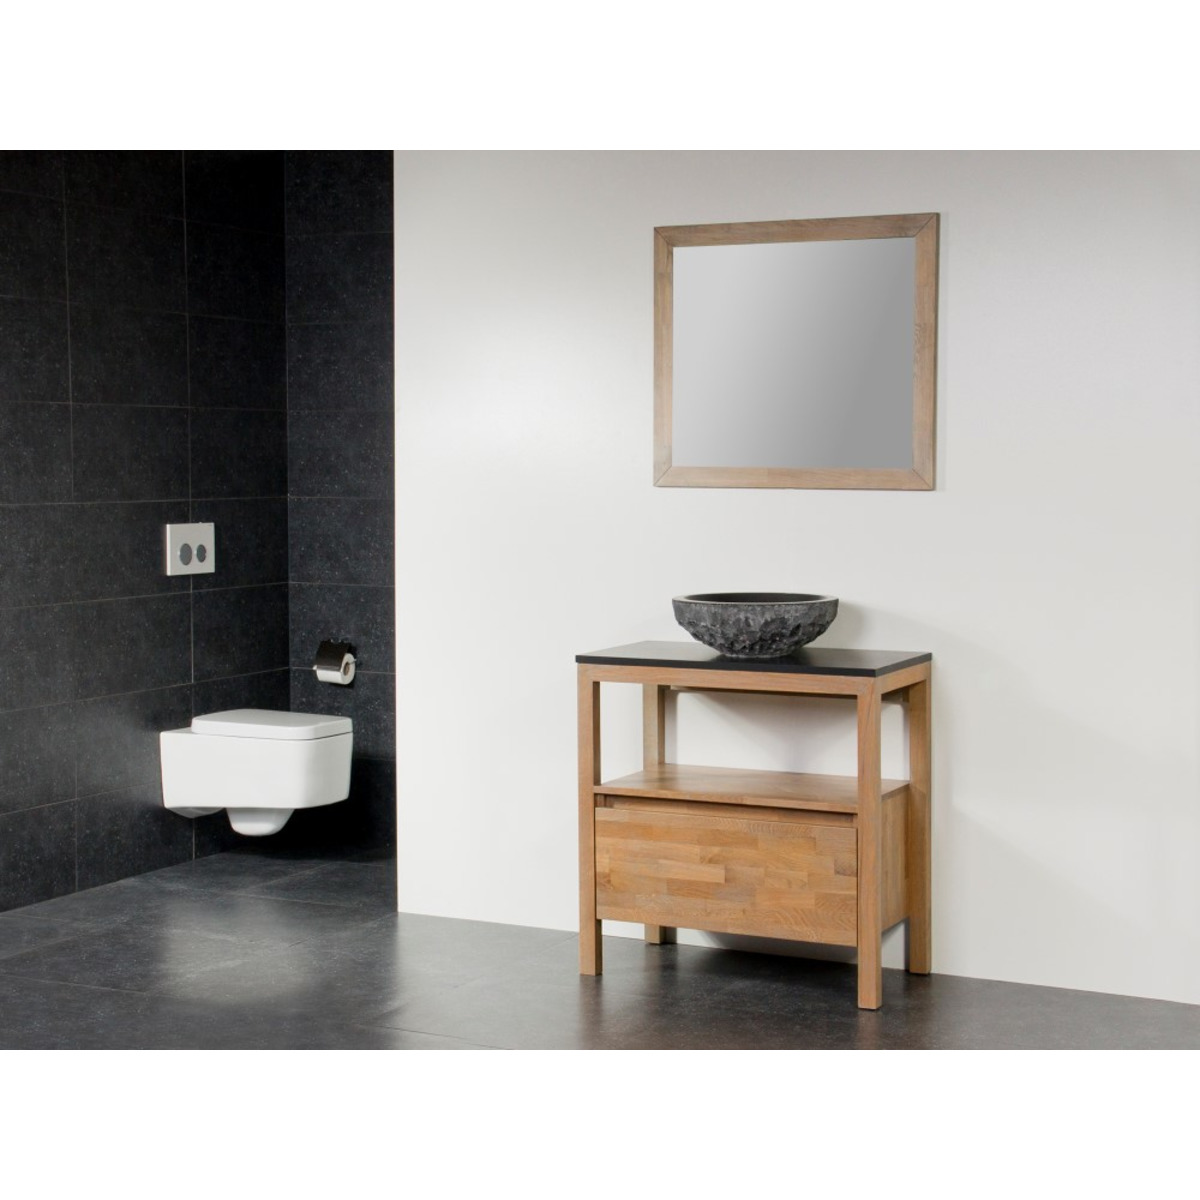 saniclass natural wood meuble salle de bain avec miroir 80cm grey wash avec vasque poser en. Black Bedroom Furniture Sets. Home Design Ideas